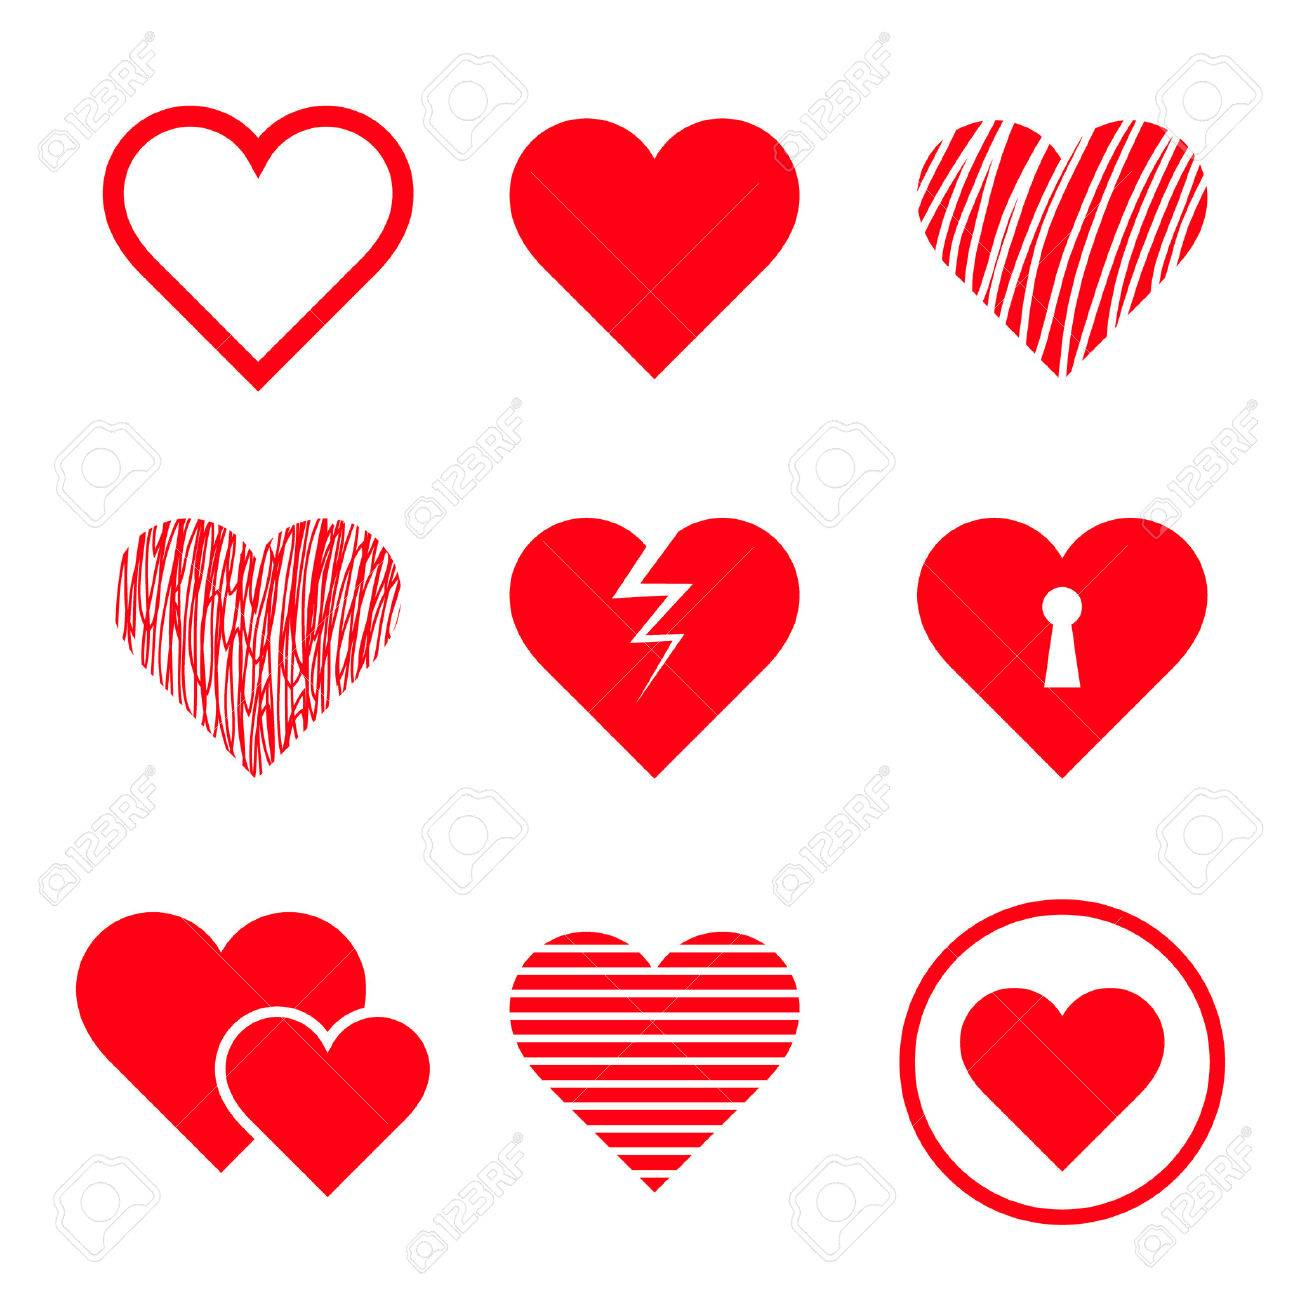 vector hearts set royalty free cliparts vectors and stock rh 123rf com free vector heart outline free vector heart images